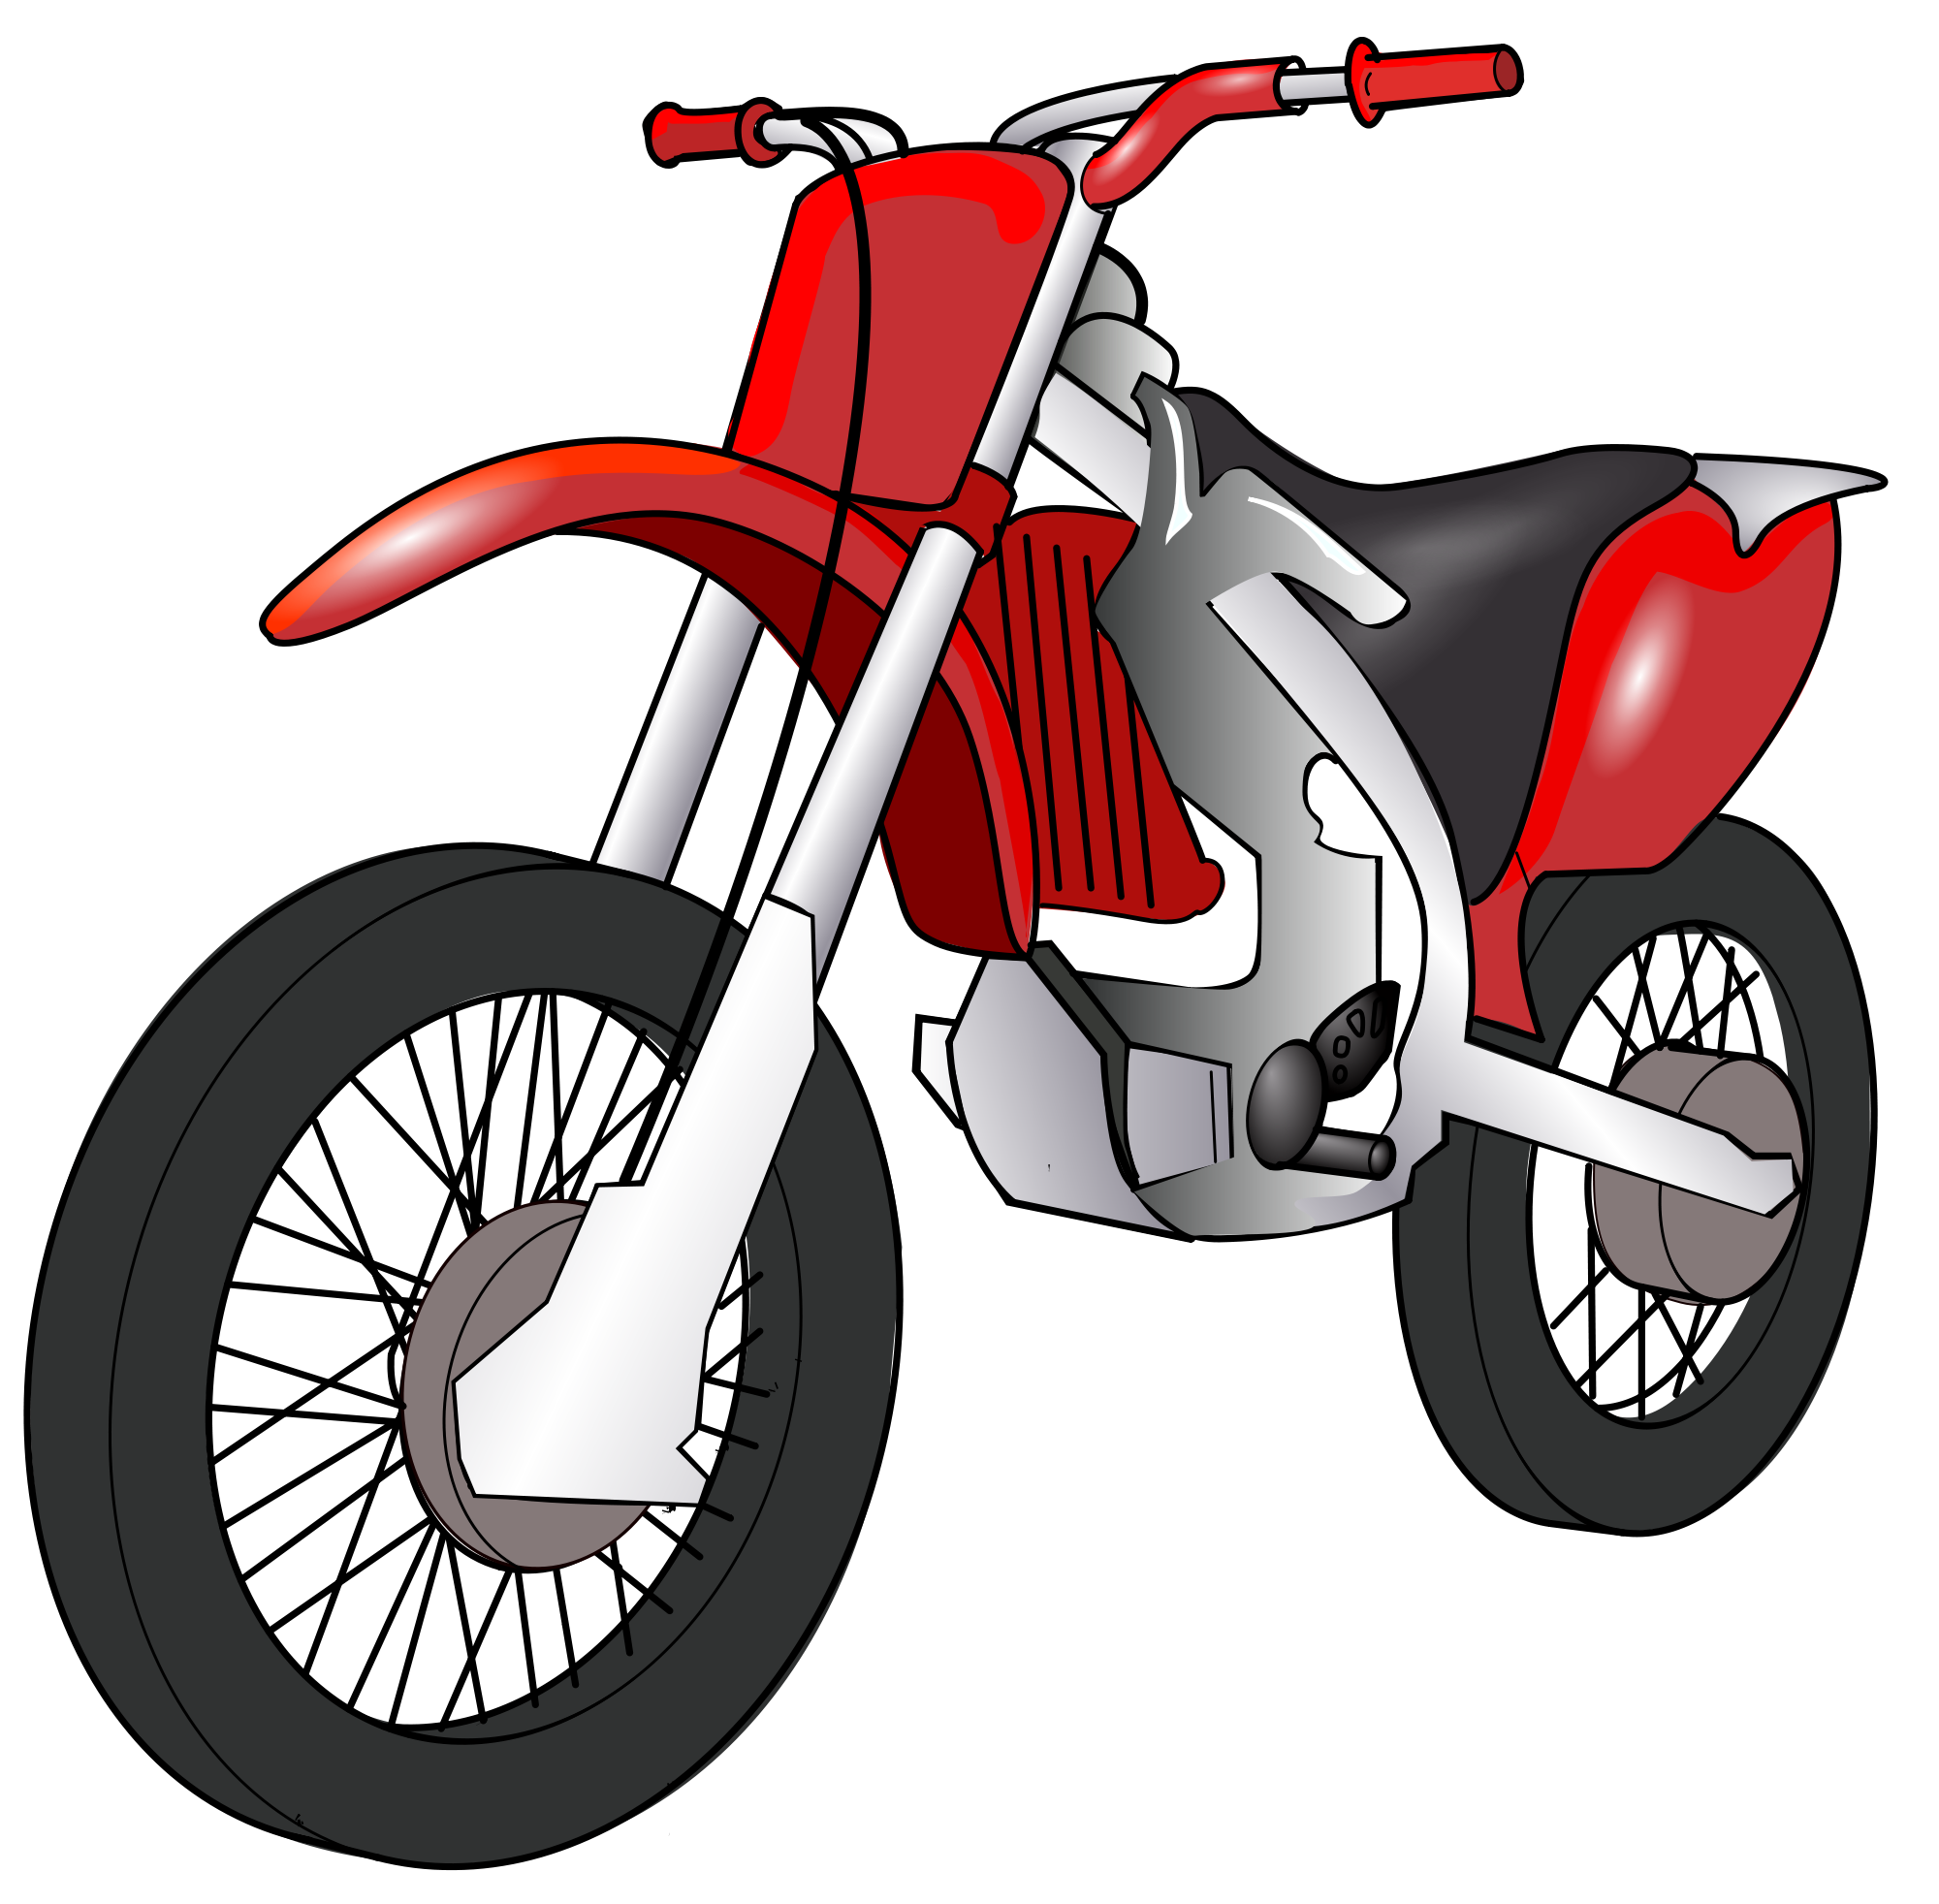 Motorcycle cartoon png. File motorbike svg wikimedia